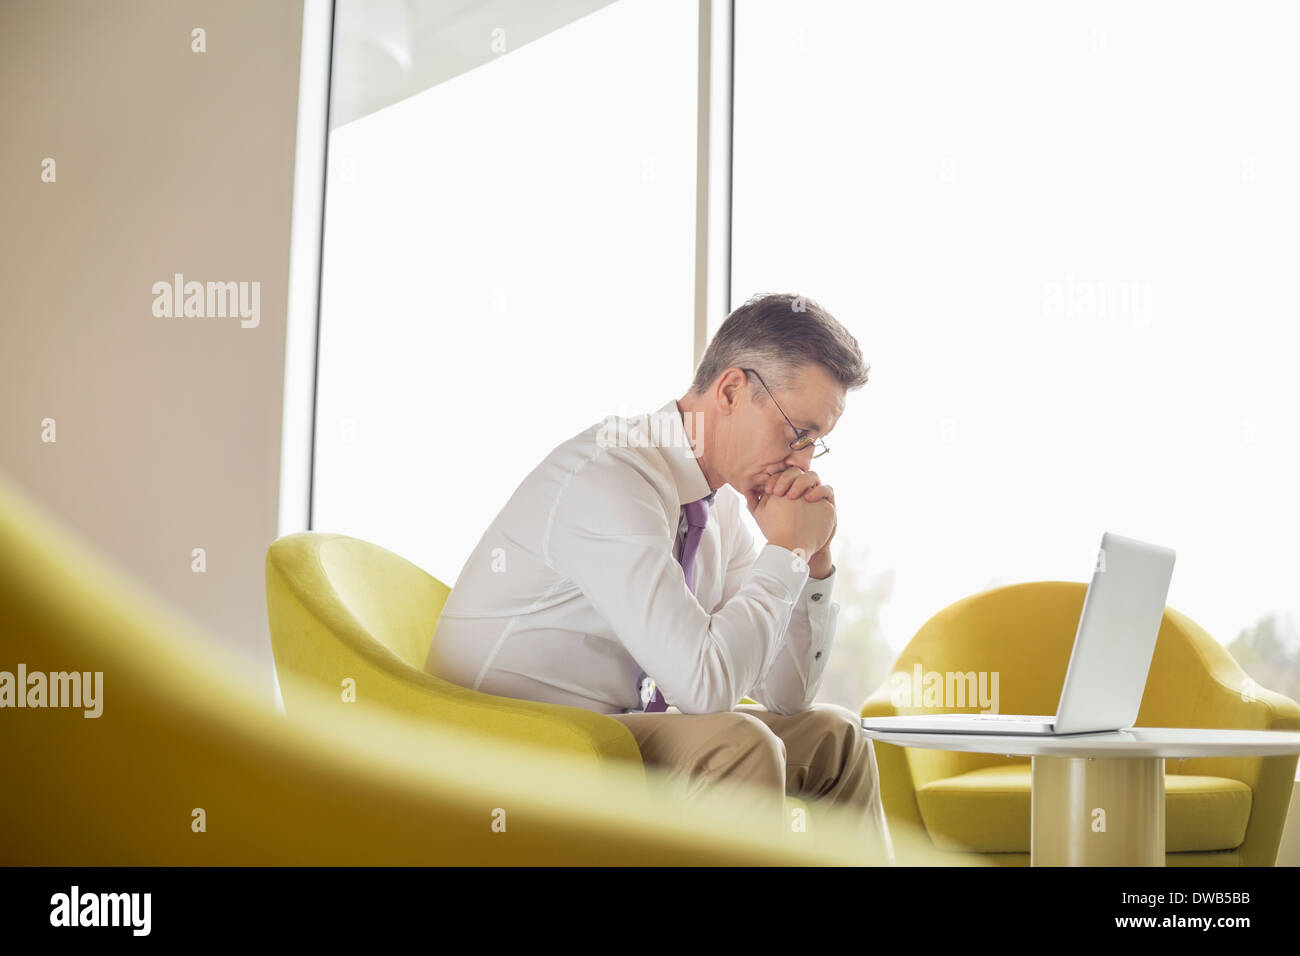 Vue latérale du serious businessman looking at laptop in lobby Photo Stock